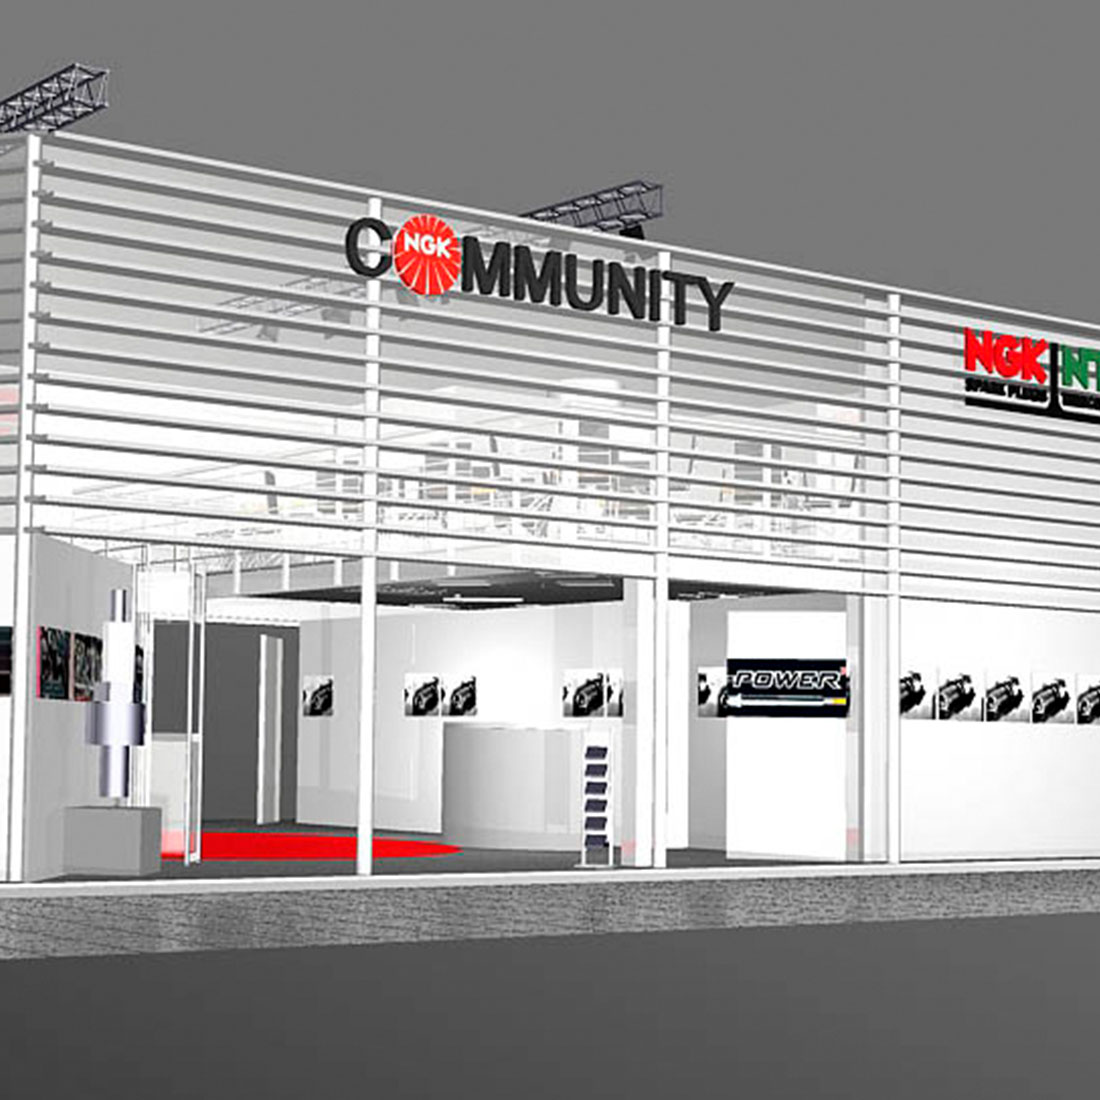 NGK Messestand 3D Animation